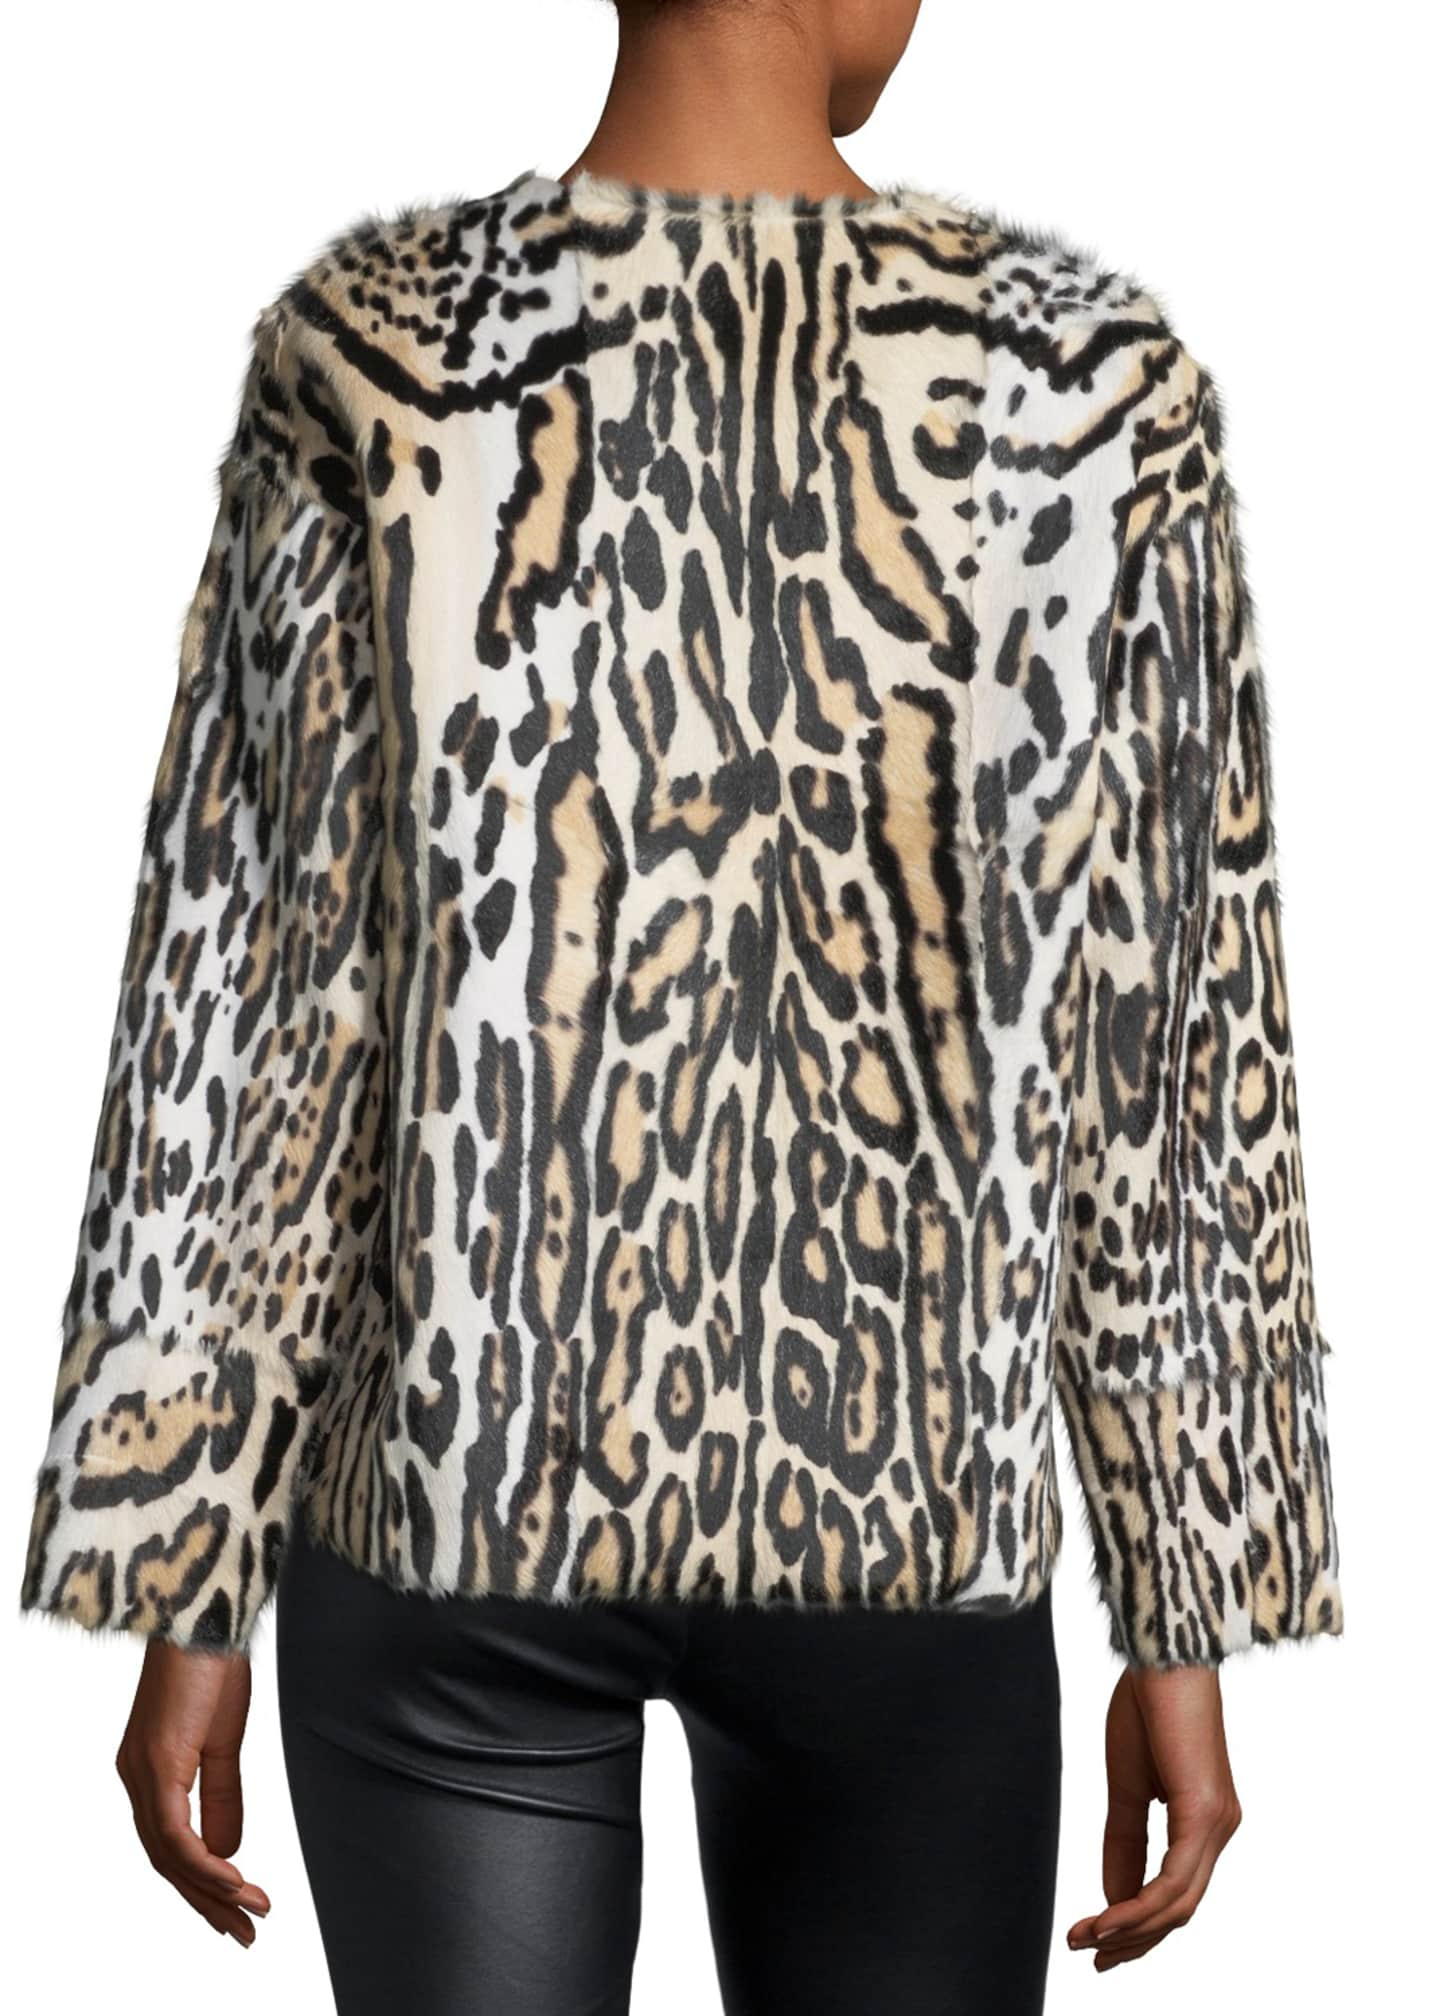 Image 2 of 3: UTZON LEOPARD JACKET